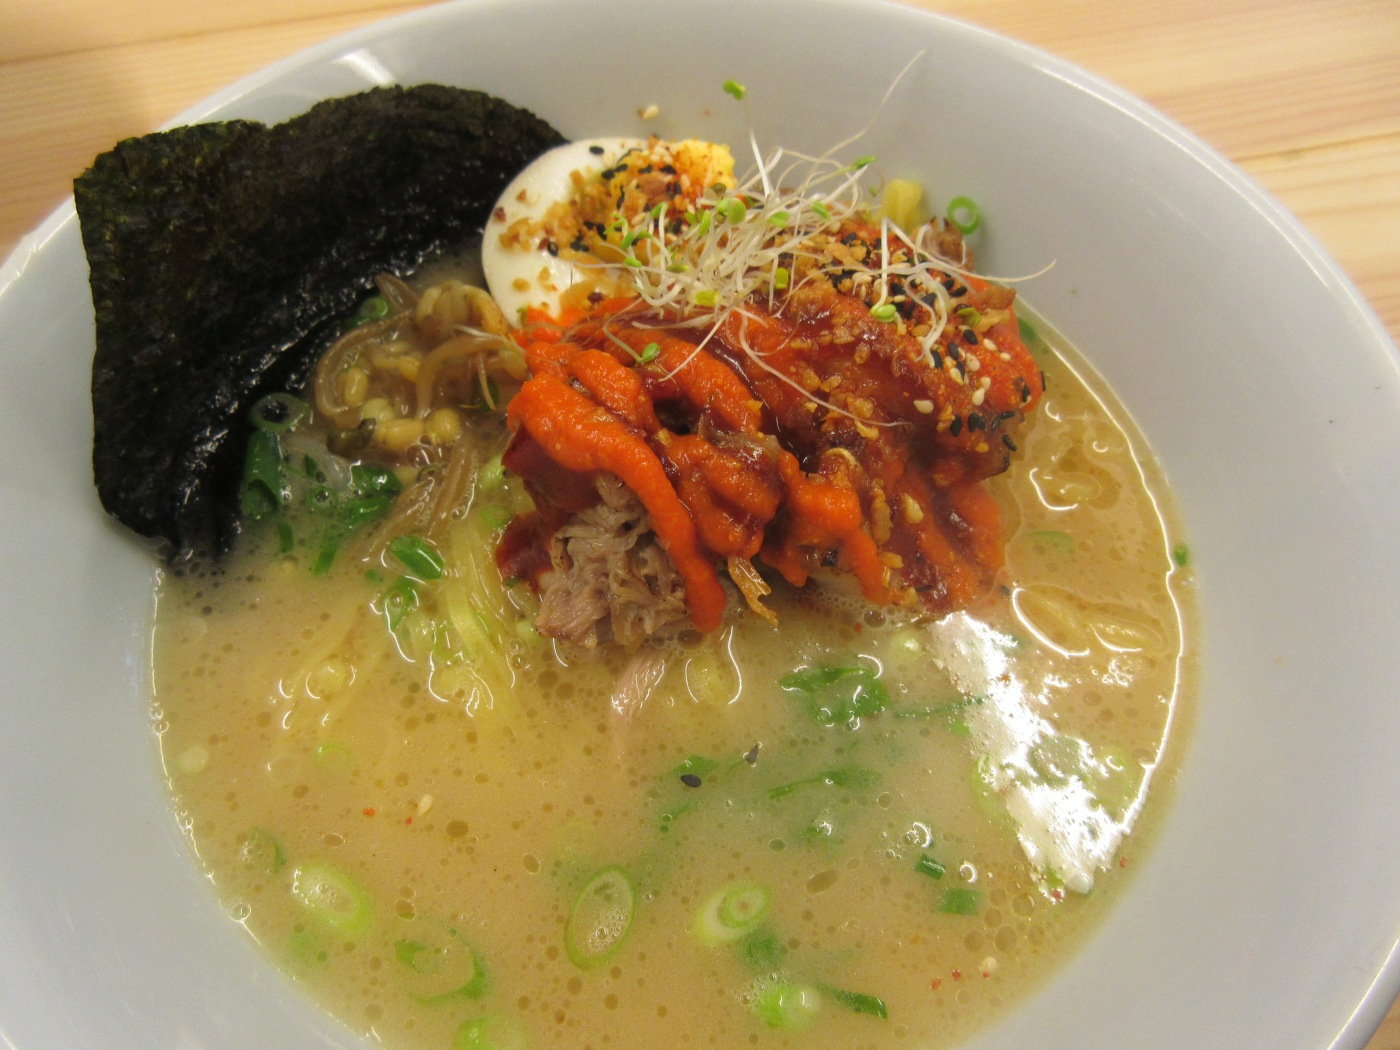 Ramen Love With You - A Bowl of Spicy Garlic Tonkotsu Ramen at Fat Ramen in Helsinki, Finland